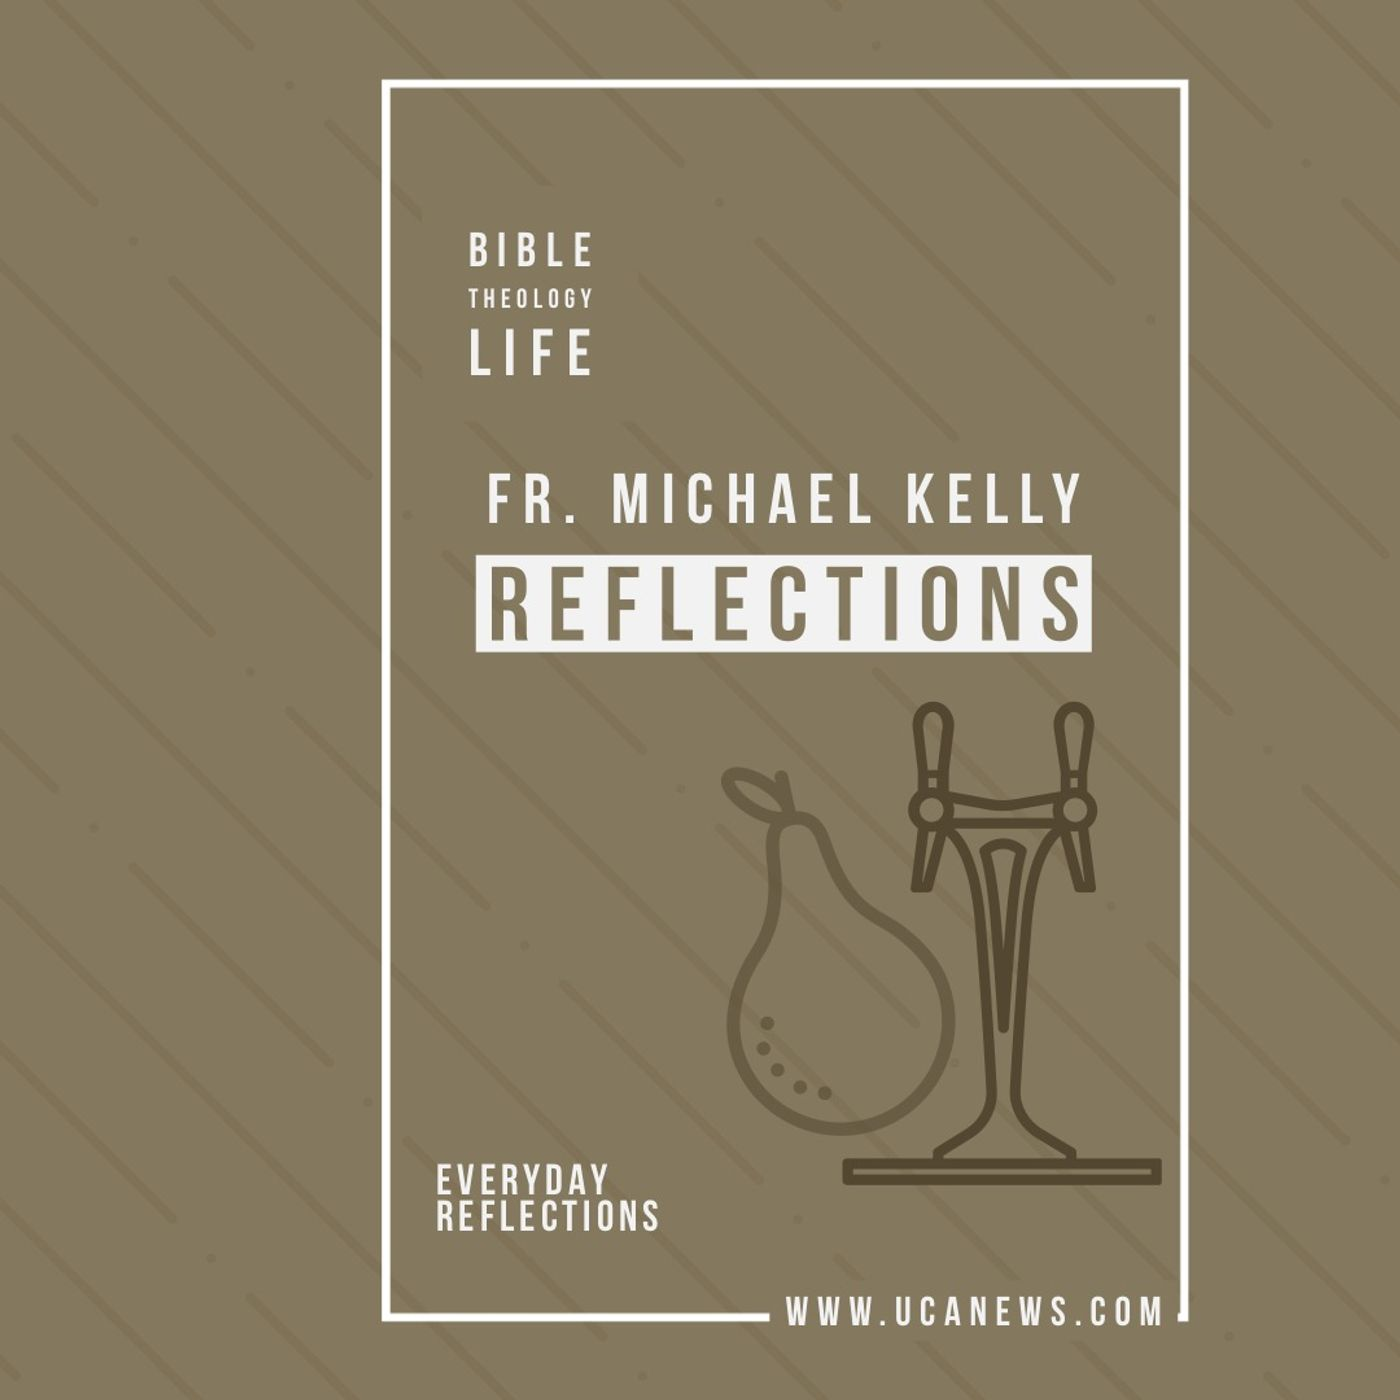 Reflections with Fr. Michael Kelly - Friday 5 Mar, 2021